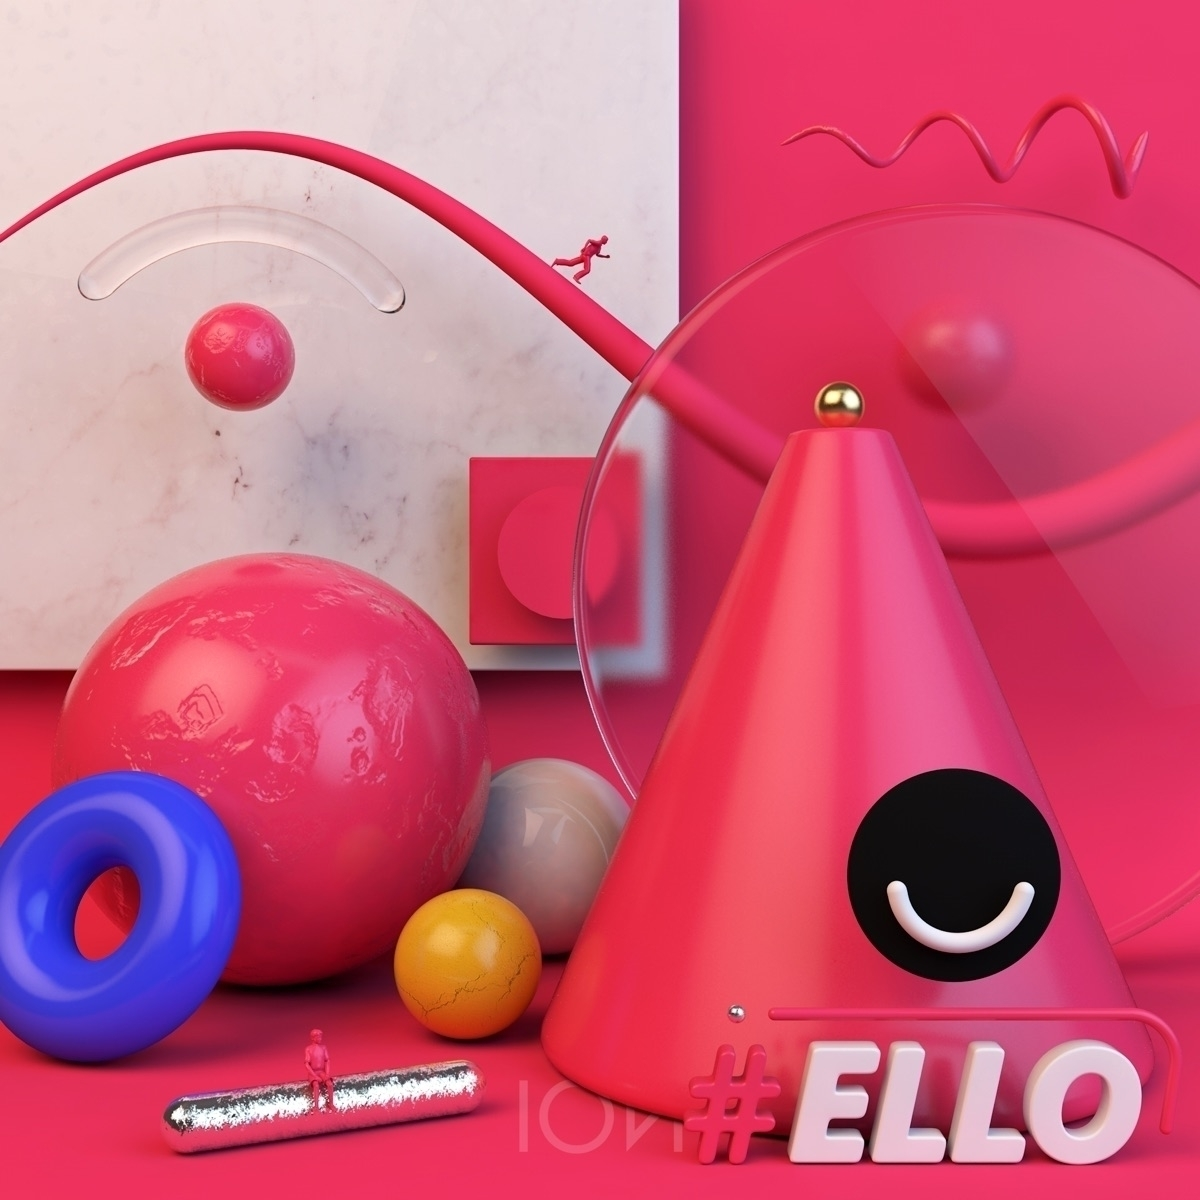 creative morning ello team  - andreasivan | ello